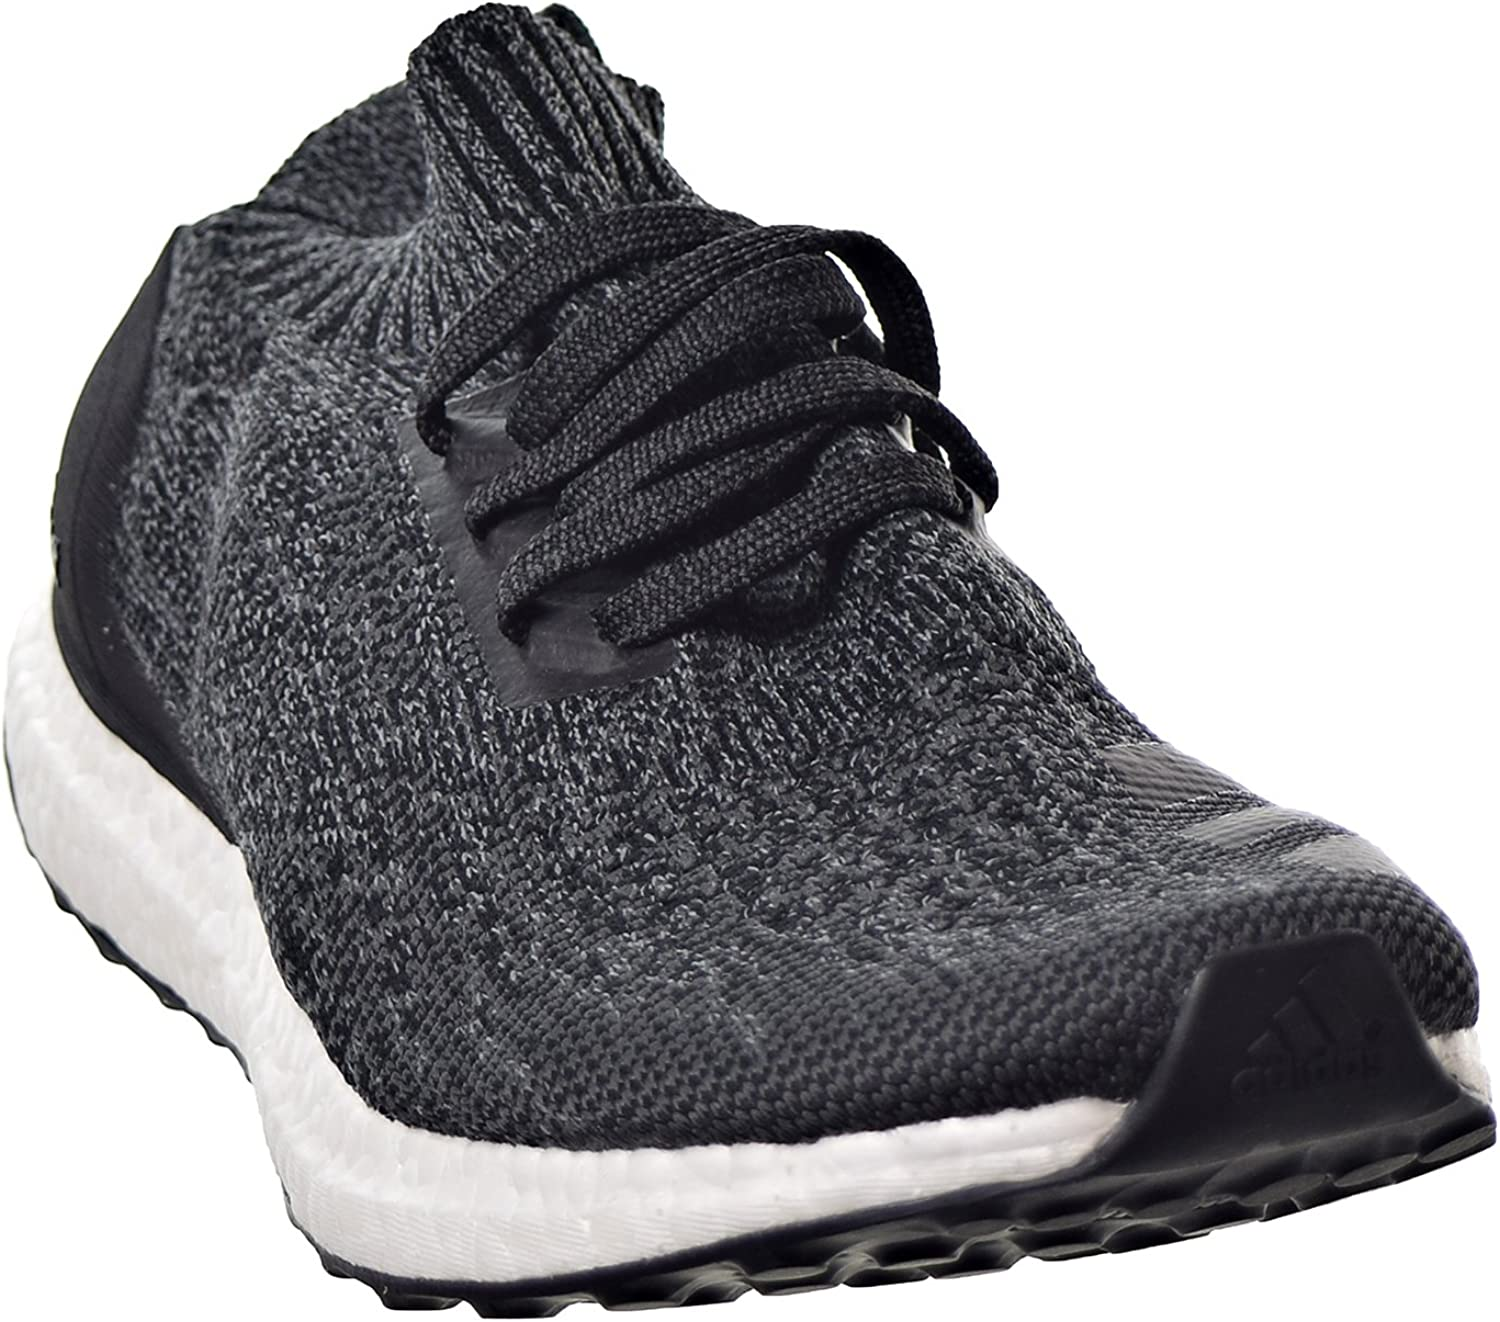 adidas Ultraboost Uncaged Shoe – Men s Running